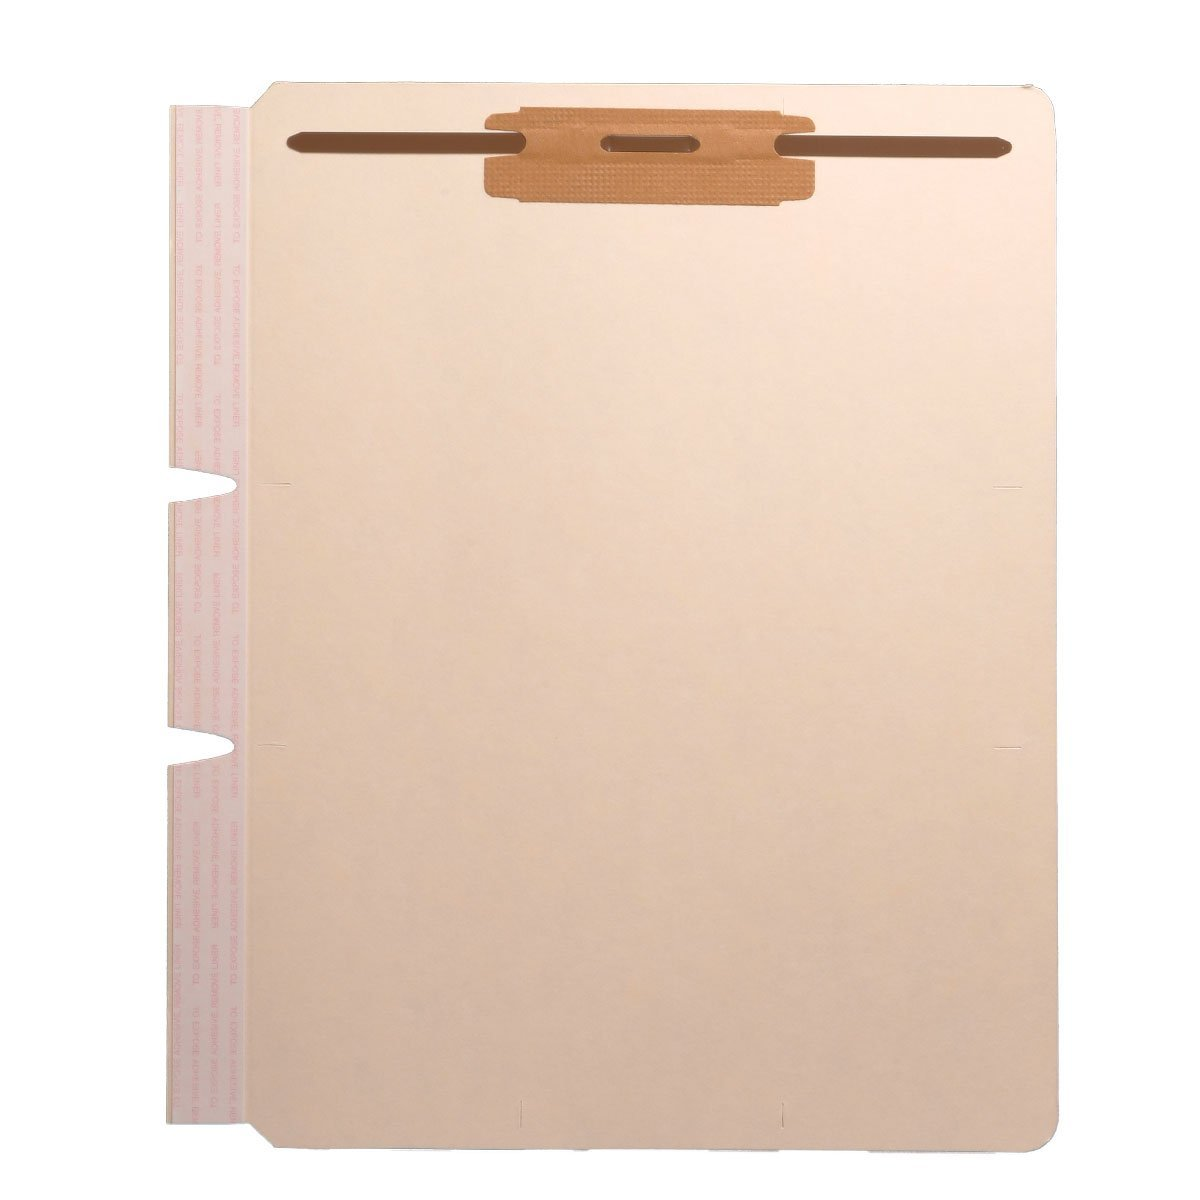 Self Adhesive Divider, Standard Side Flap, 2'' Fasteners on Top of Both Sides (Box of 100)